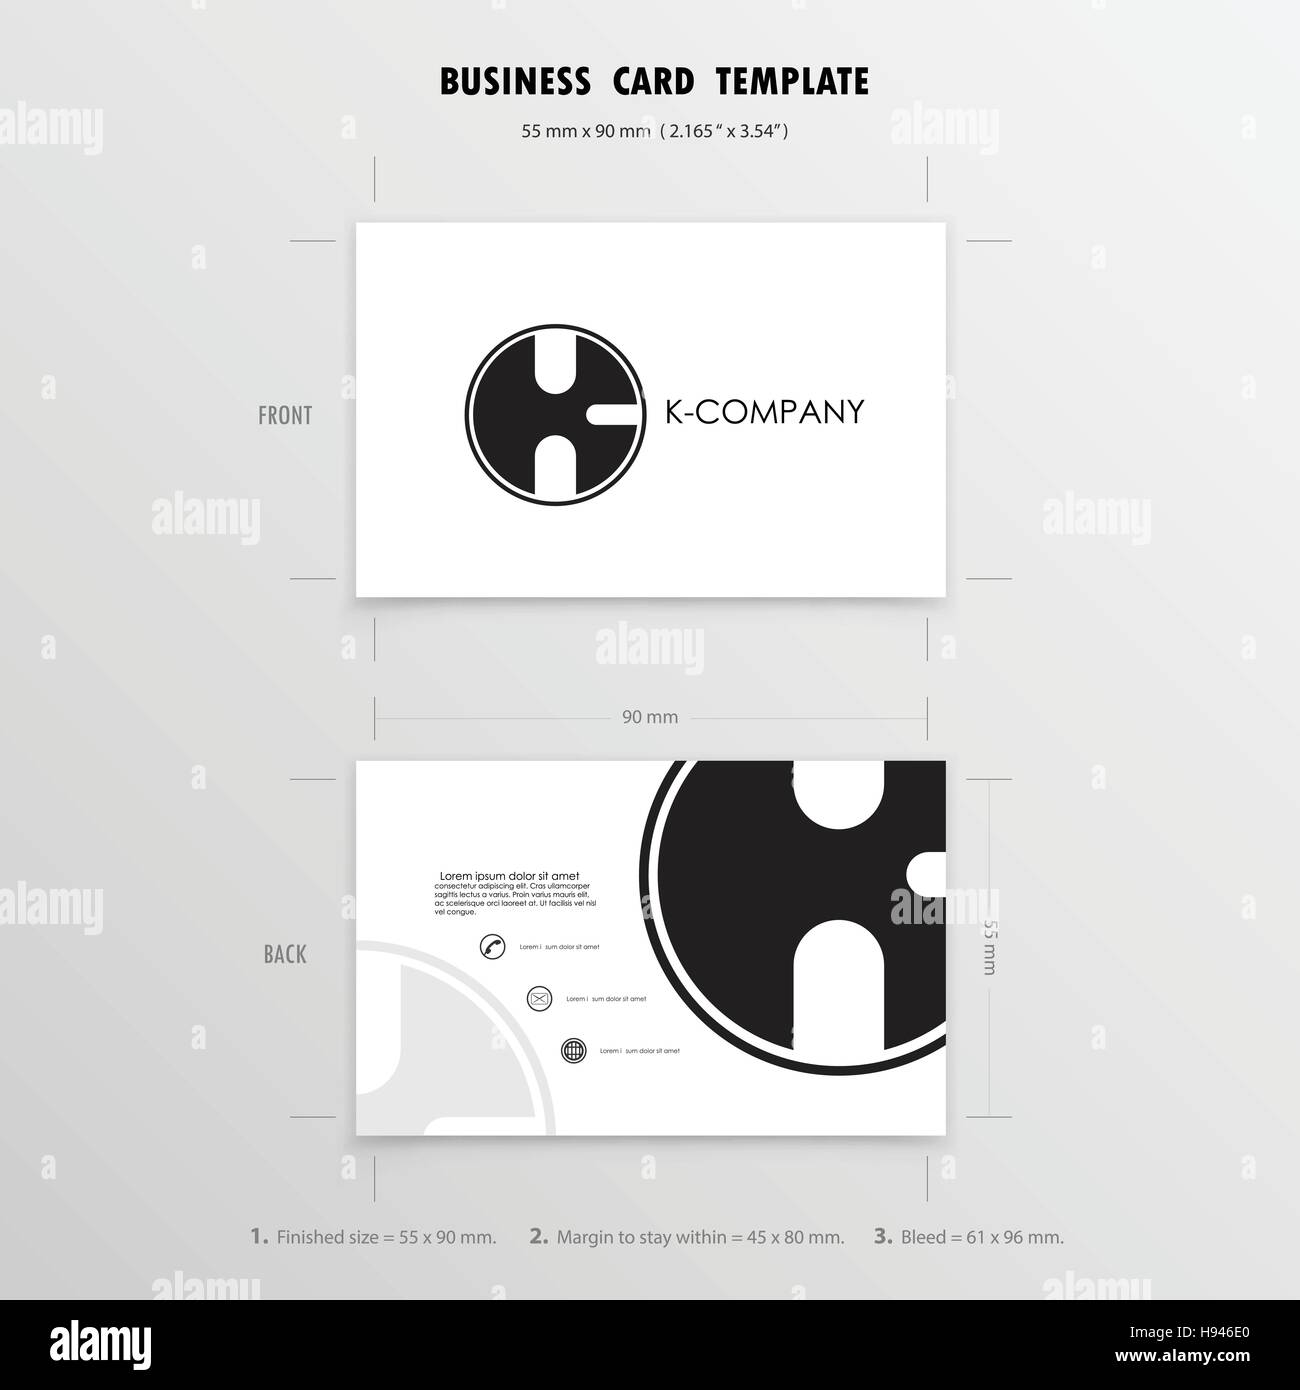 Business cards 85 x 54 template images card design and card template free business card template 85 x 54 images card design and card free business card template reheart Choice Image